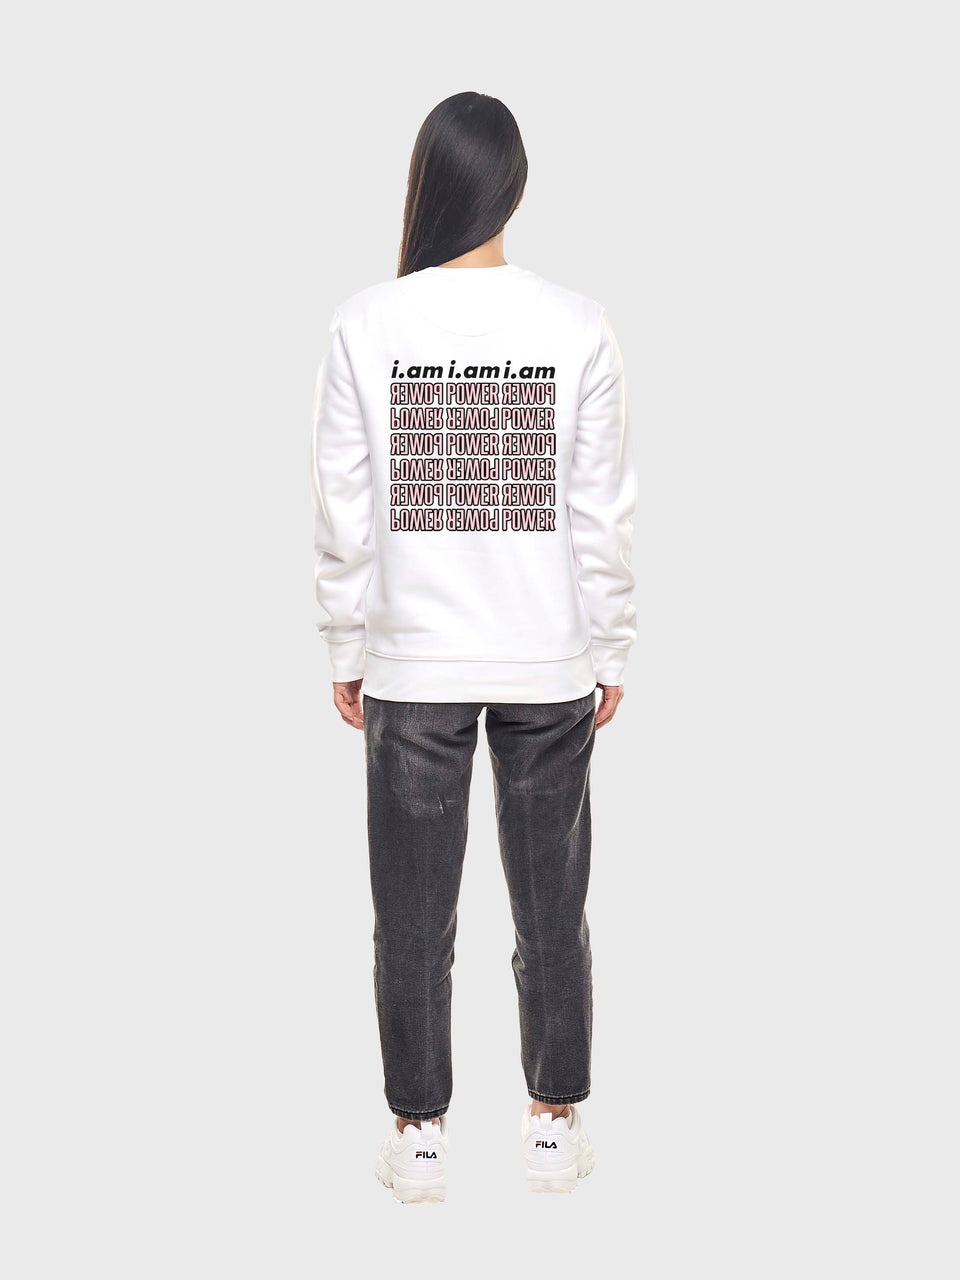 Power - White - Unisex sweatshirt